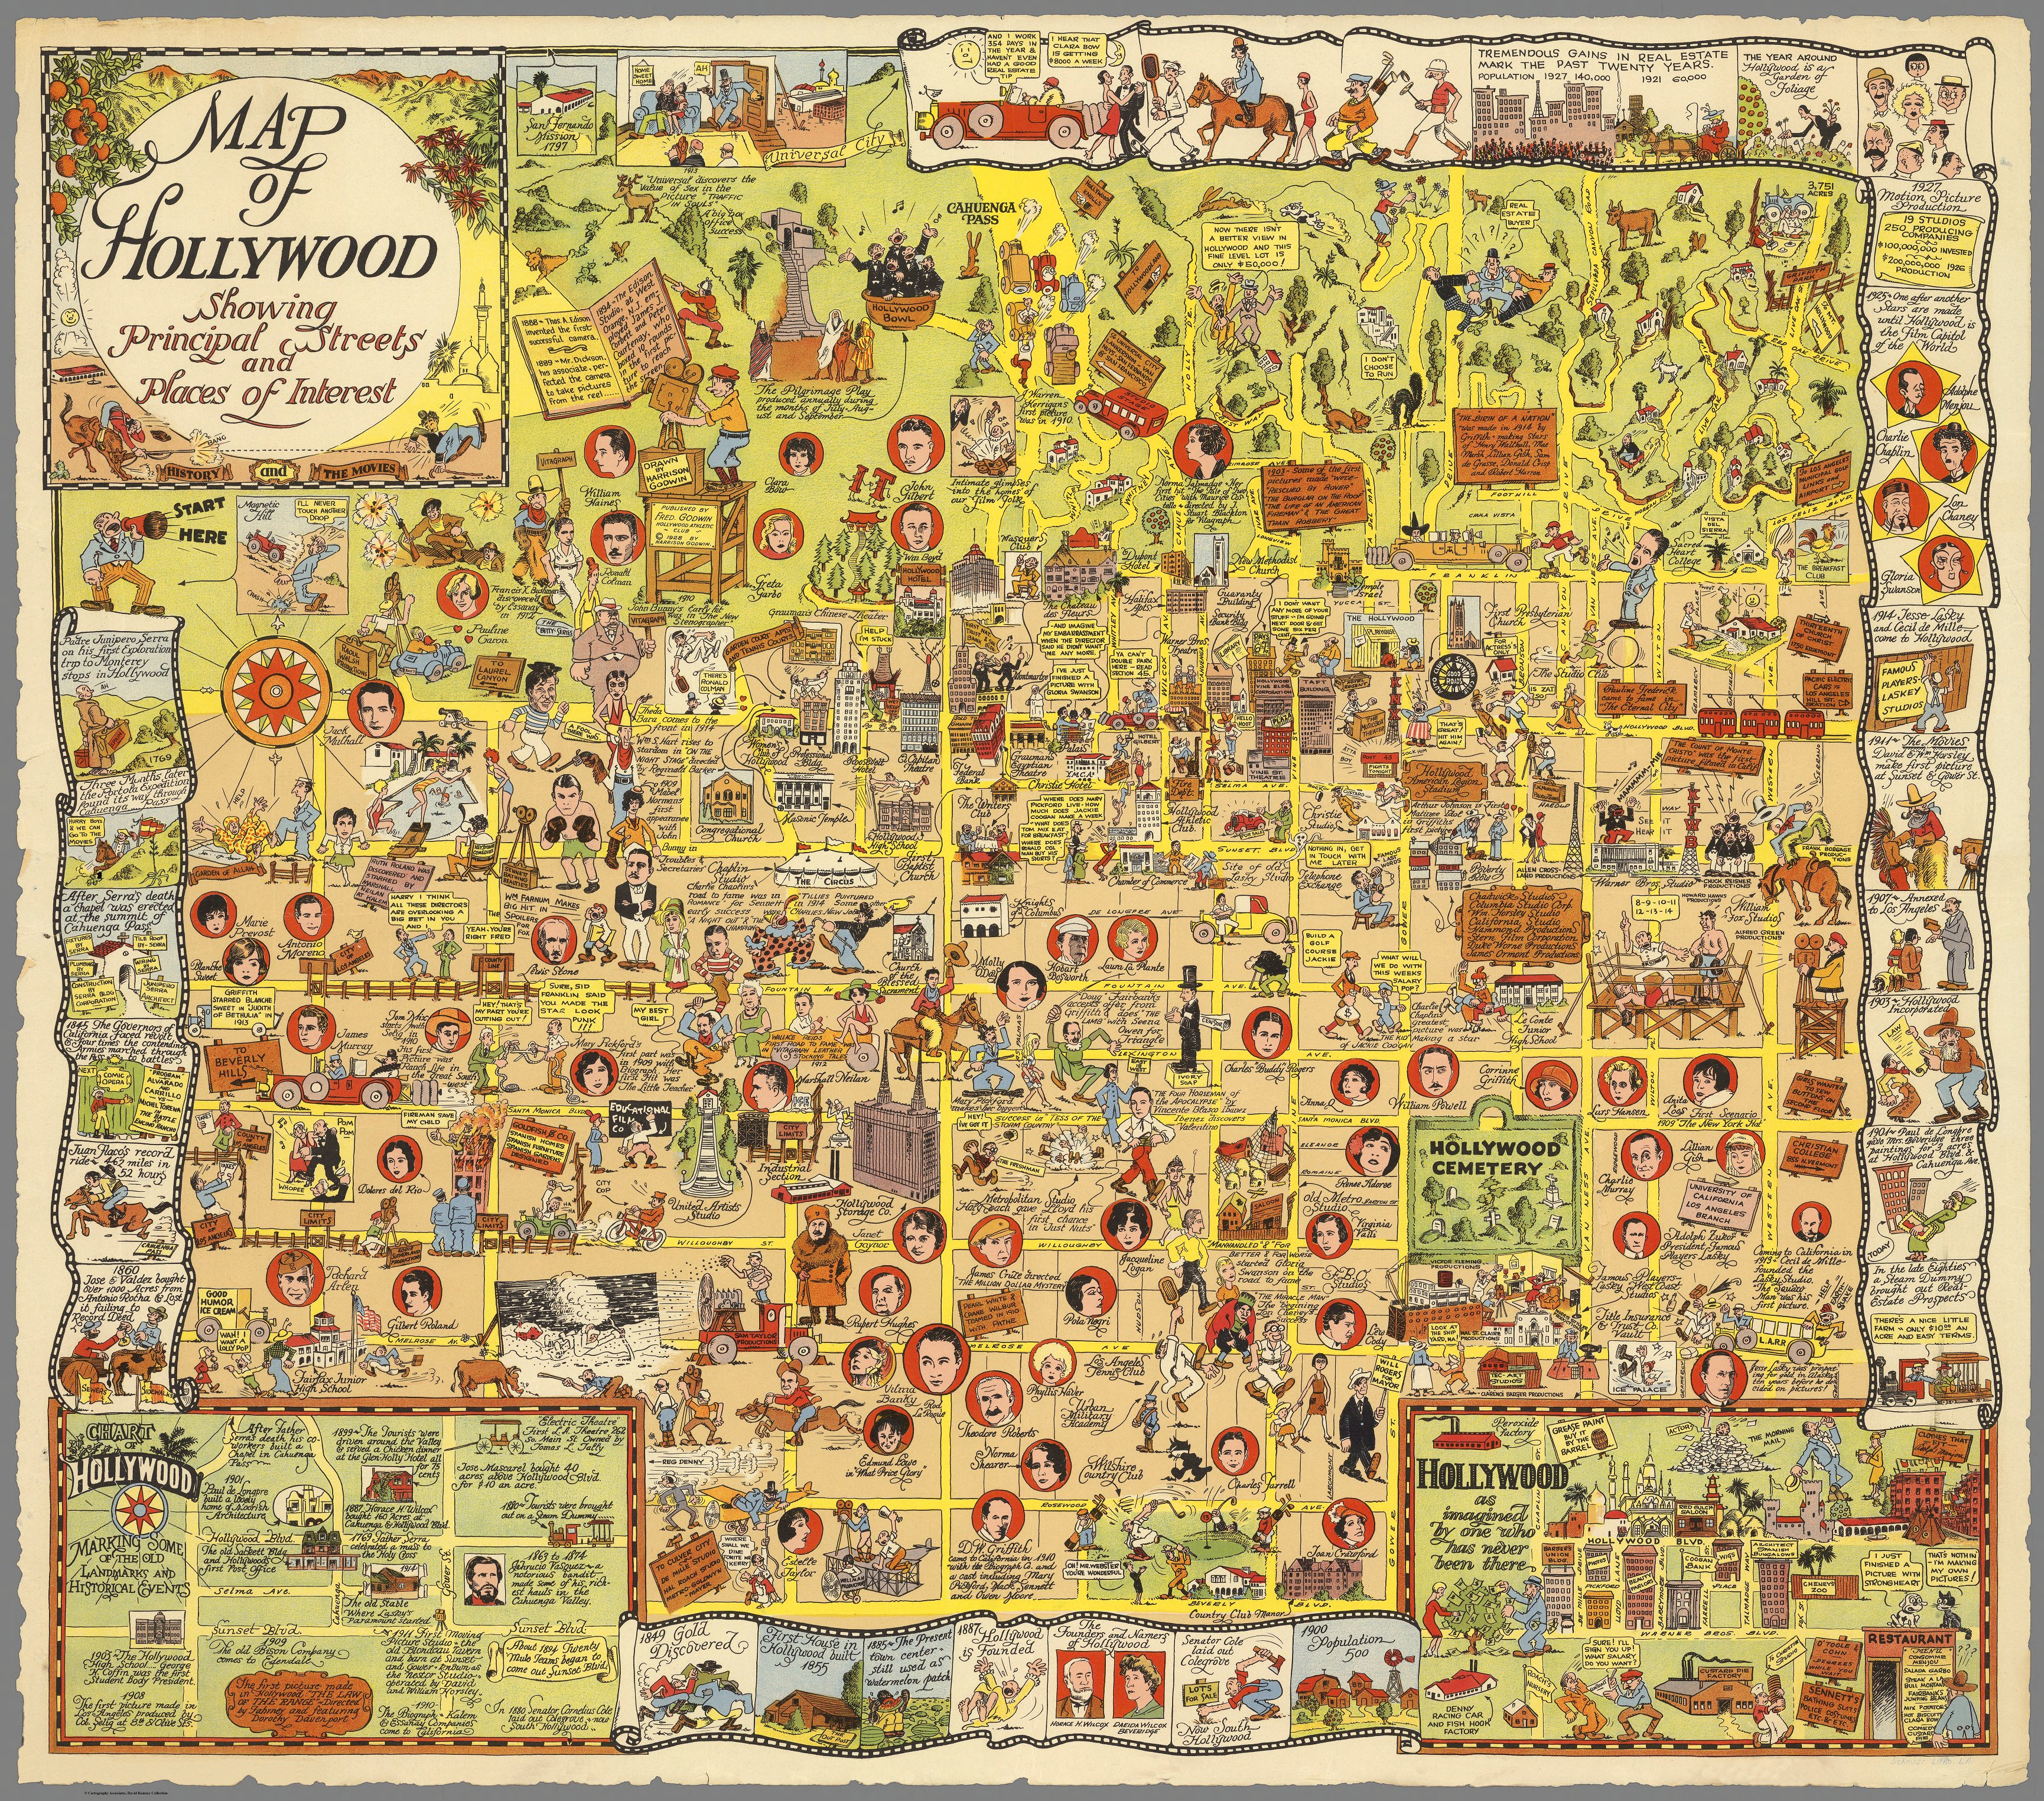 Cool Vintage Map of Hollywood   Earthly Mission